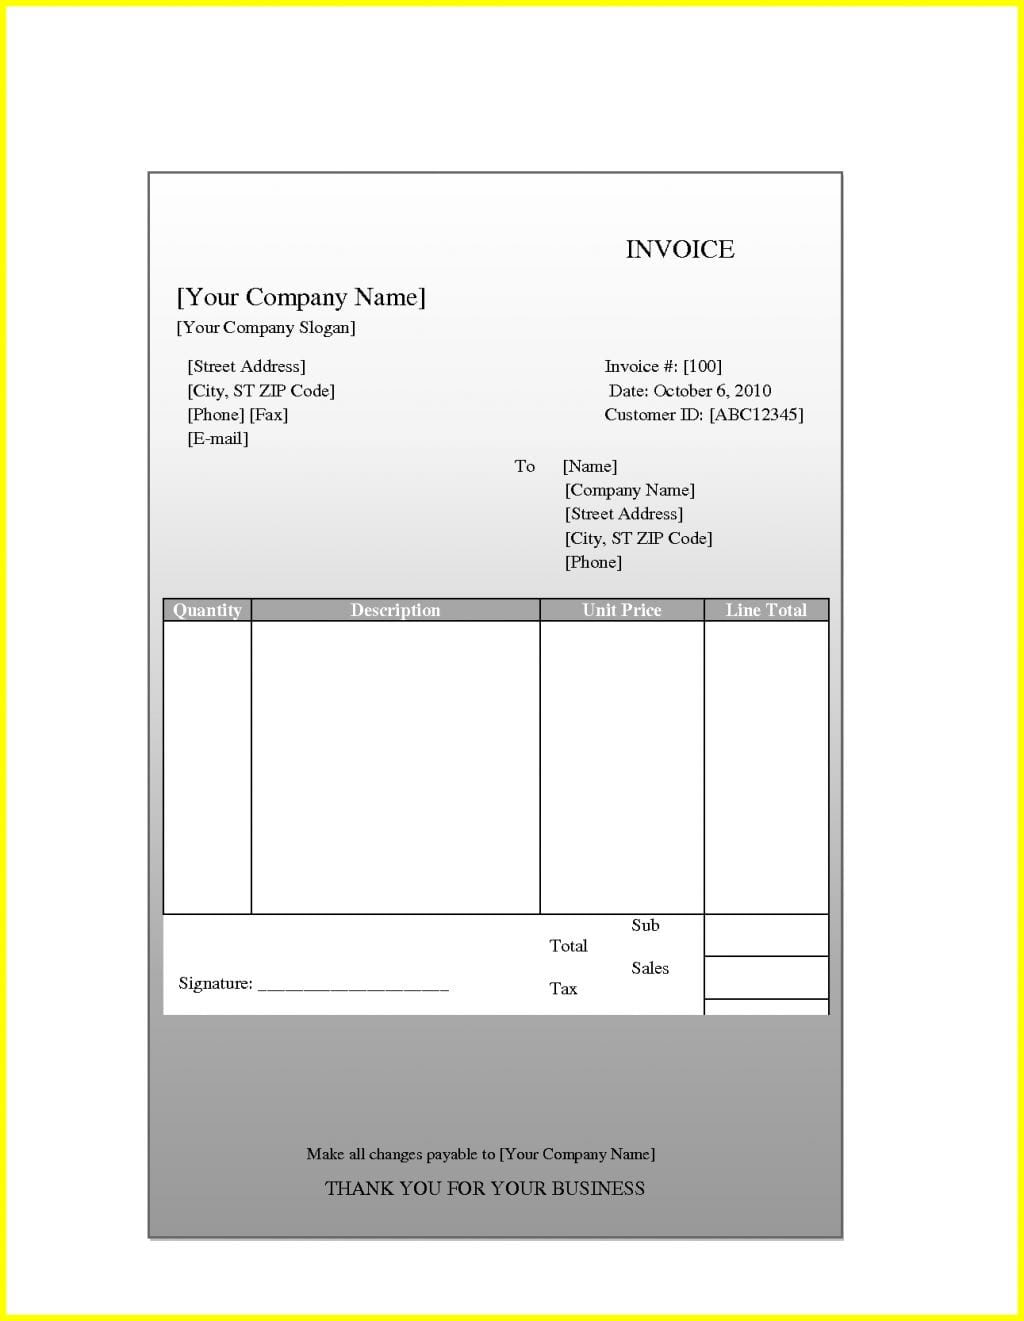 Invoice Template Quickbooks Online Invoice Template Quickbooks Spreadsheet Templates for Busines Spreadsheet Templates for Busines Proforma Invoice Template Quickbooks